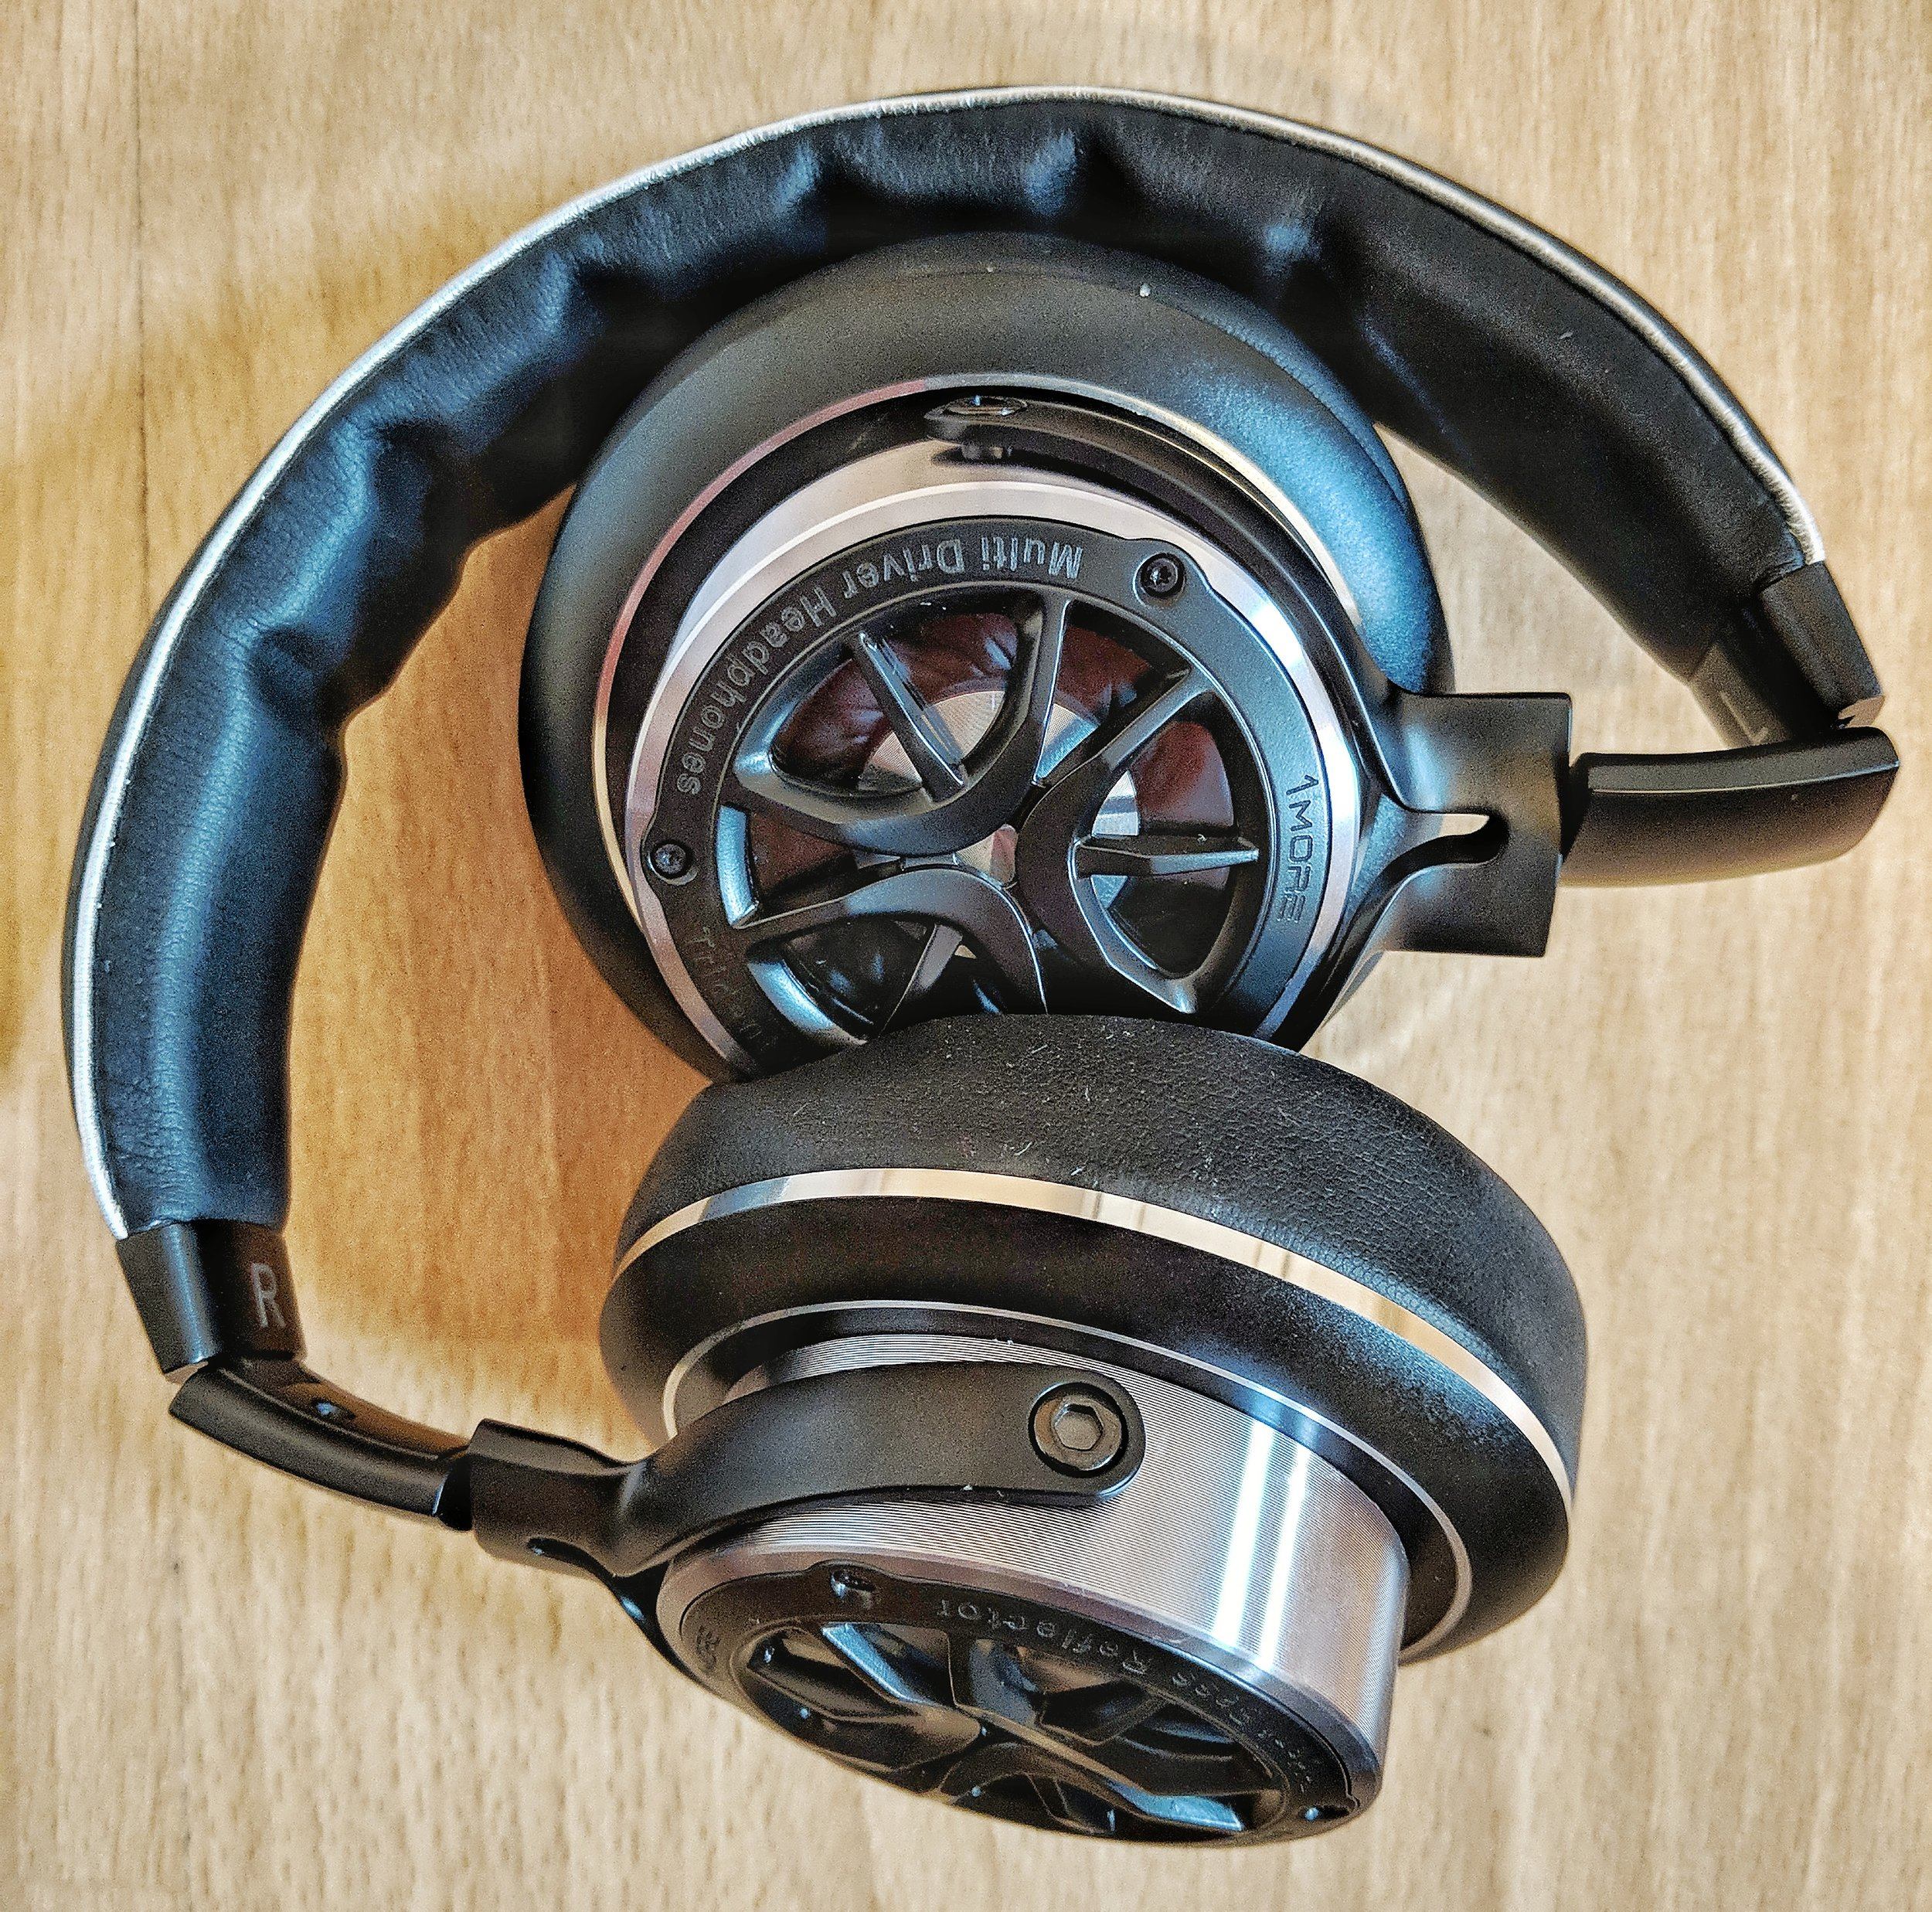 During the review we were impressed by the 1 more triple driver headphones sound quality especially good for such a compact over ear model.